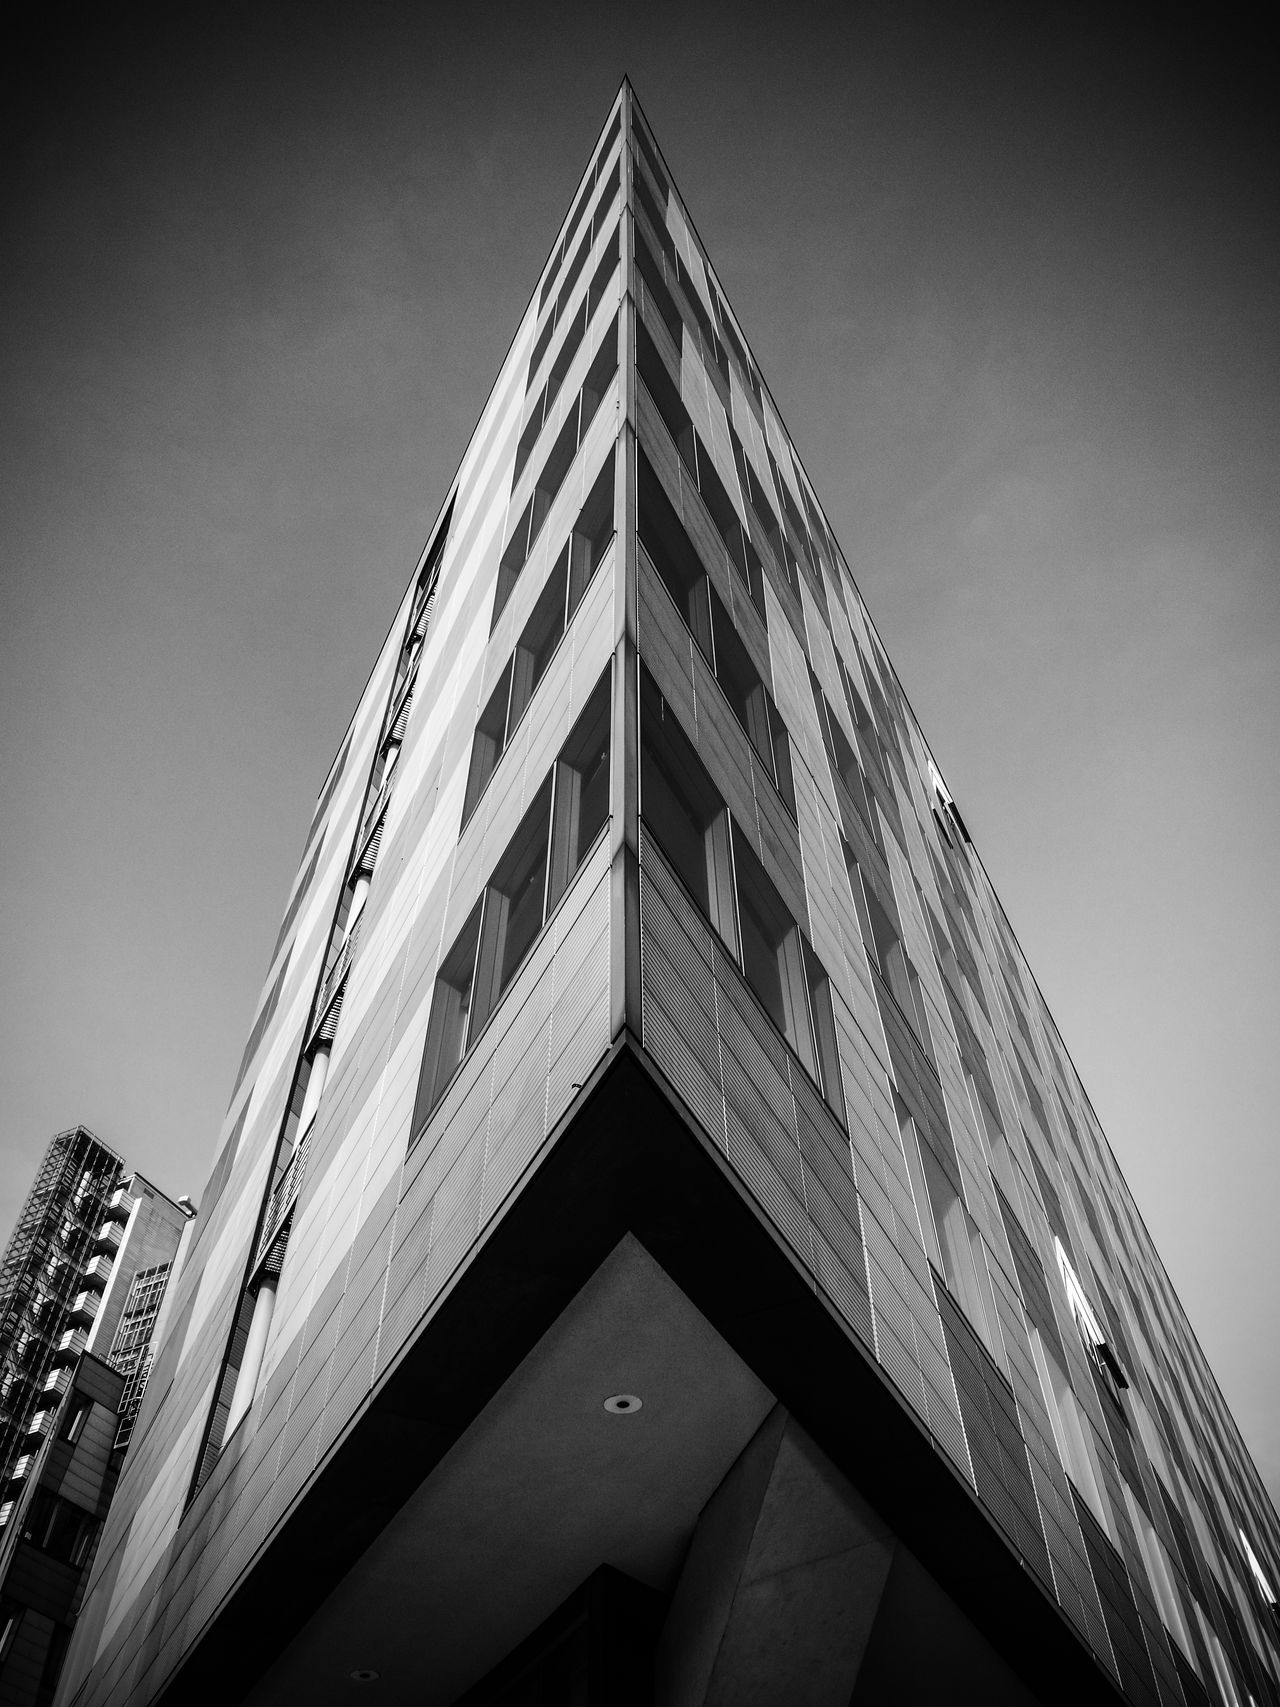 Monochromeview Architectural Feature Architecture Architecture_bw Architecturelovers Berlin Black & White Berlin Monochrome Berlin Schwarzweiss Berliner Ansichten Black & White Black And White Berlin Black And White Photography Building Exterior Building Story Built Structure Cityexplorer Cityscape Day Huawei P9 Leica HuaweiP9 Low Angle View Monochrome Monochrome Berlin Schwarzweiß